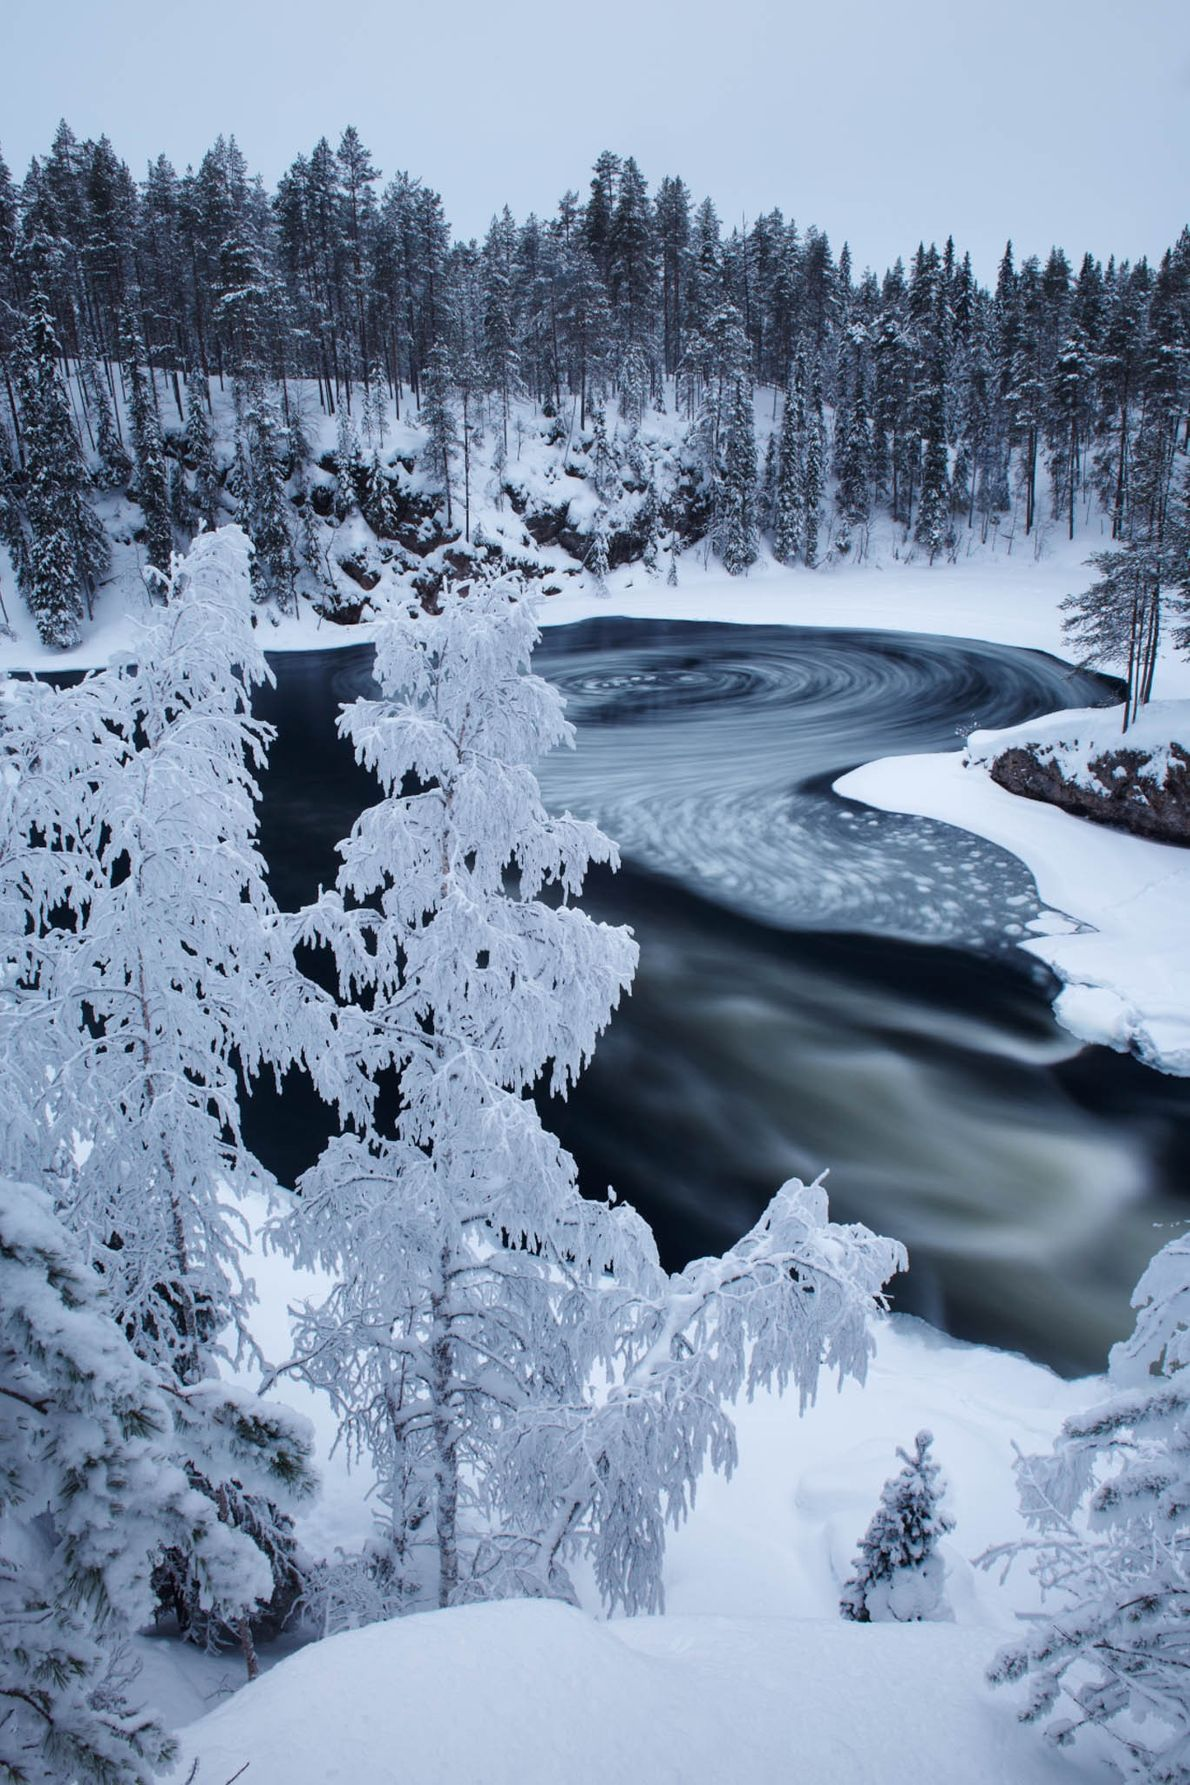 Oulanka National Park, Finland